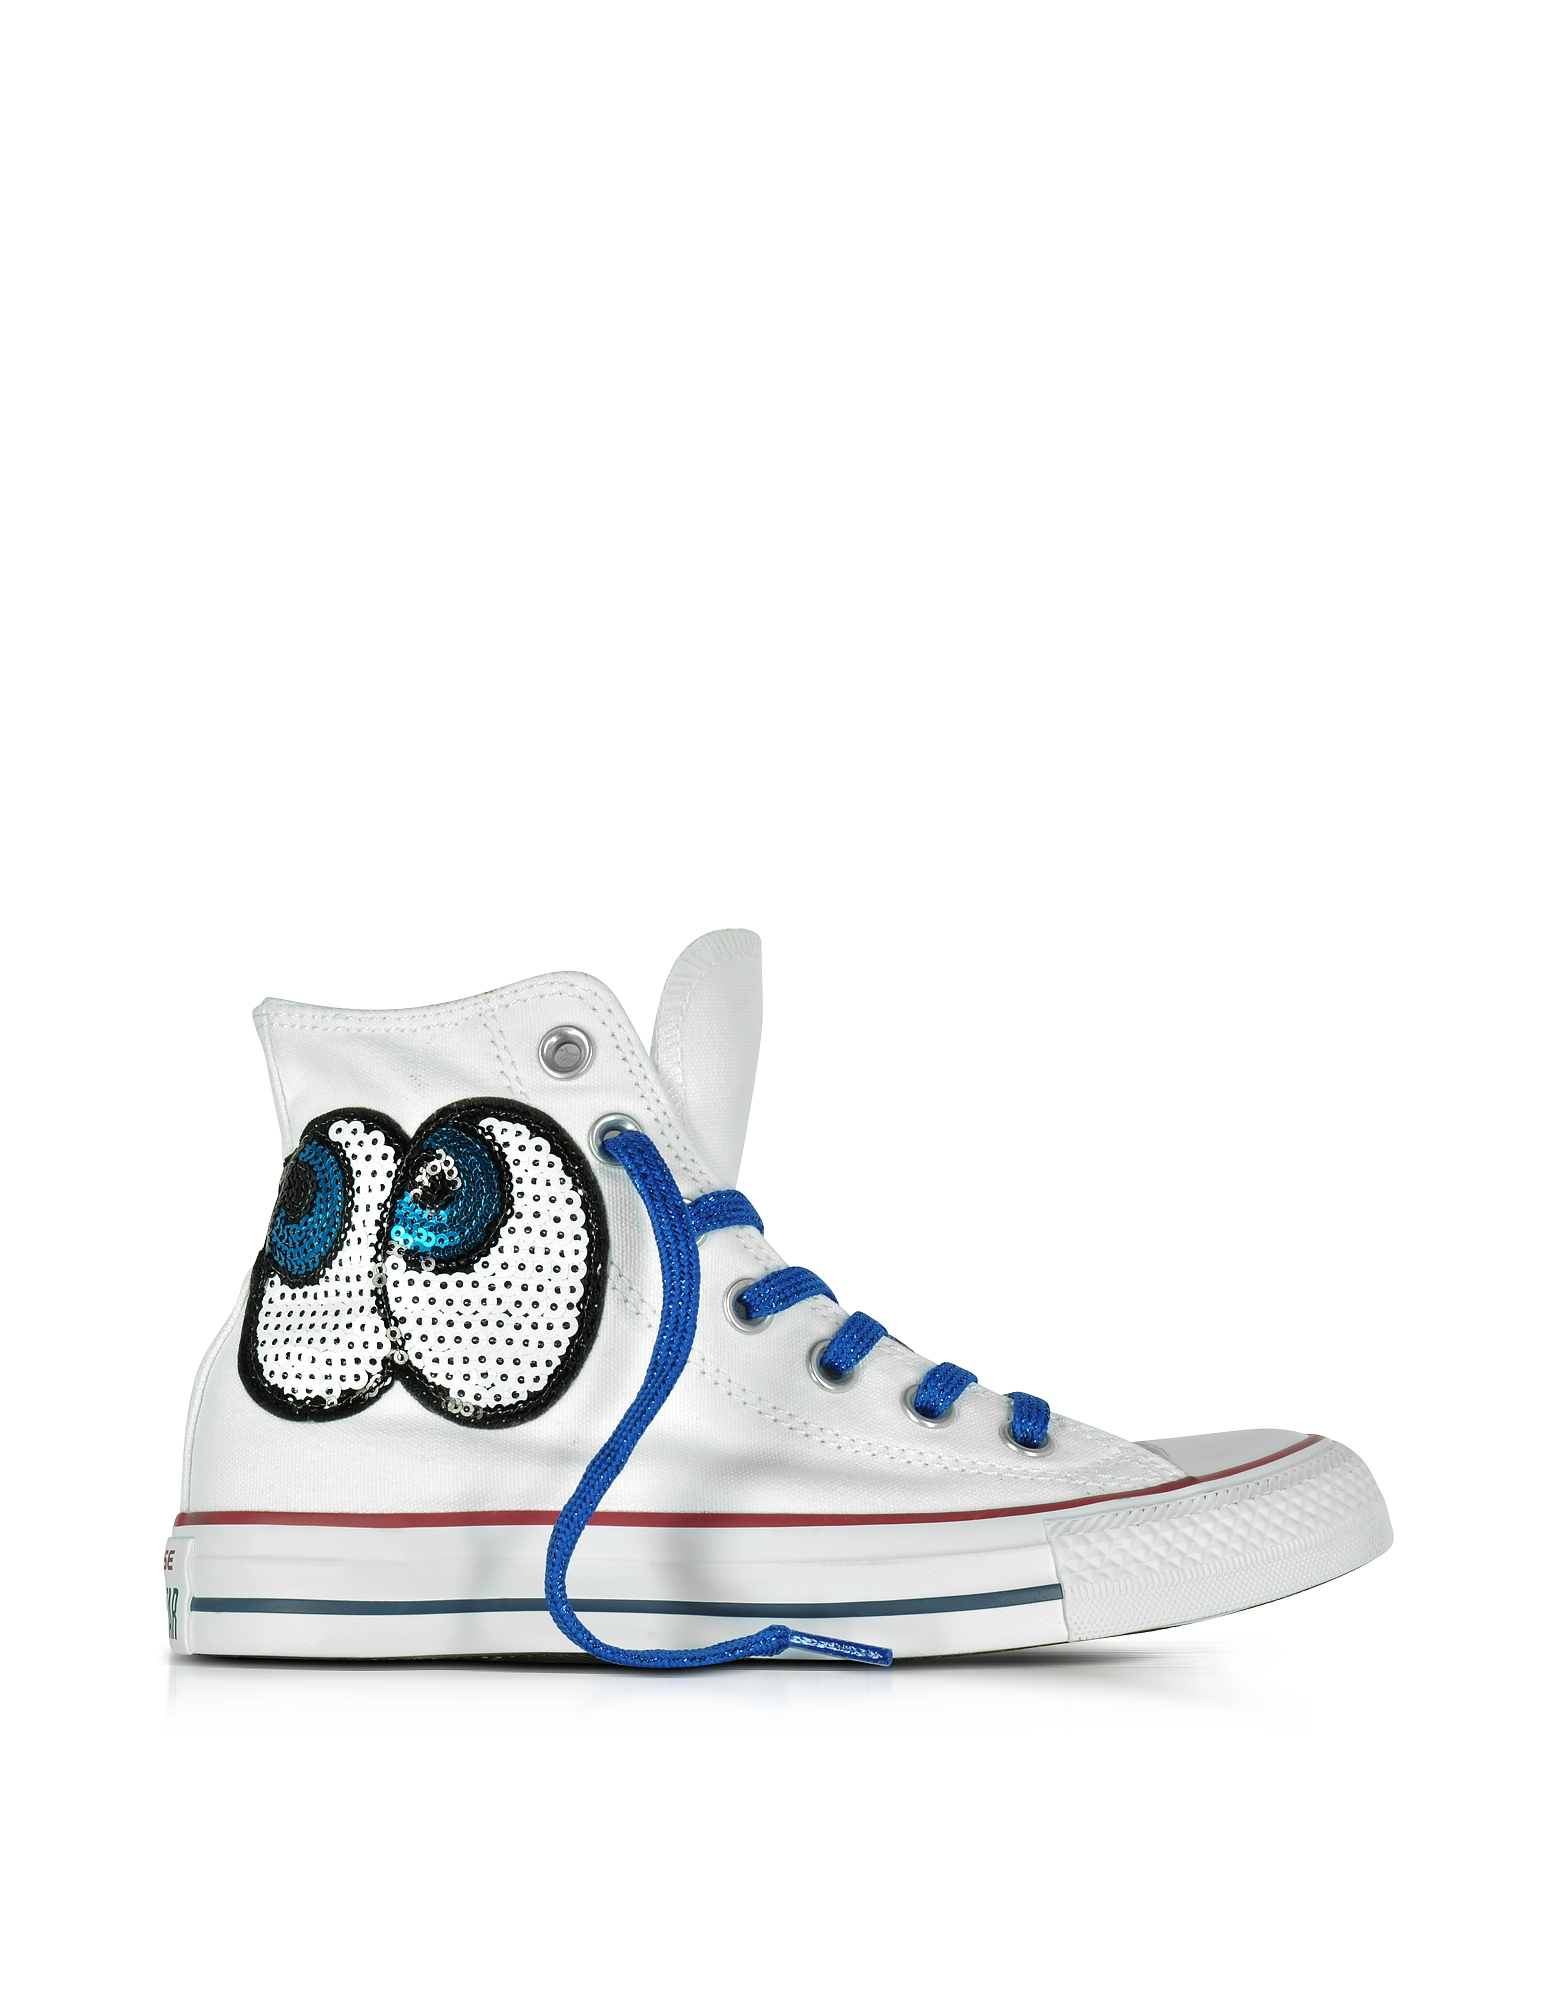 Converse Limited Edition Shoes, Chuck Taylor All Star Hi White Tropical Canvas LTD Sneakers